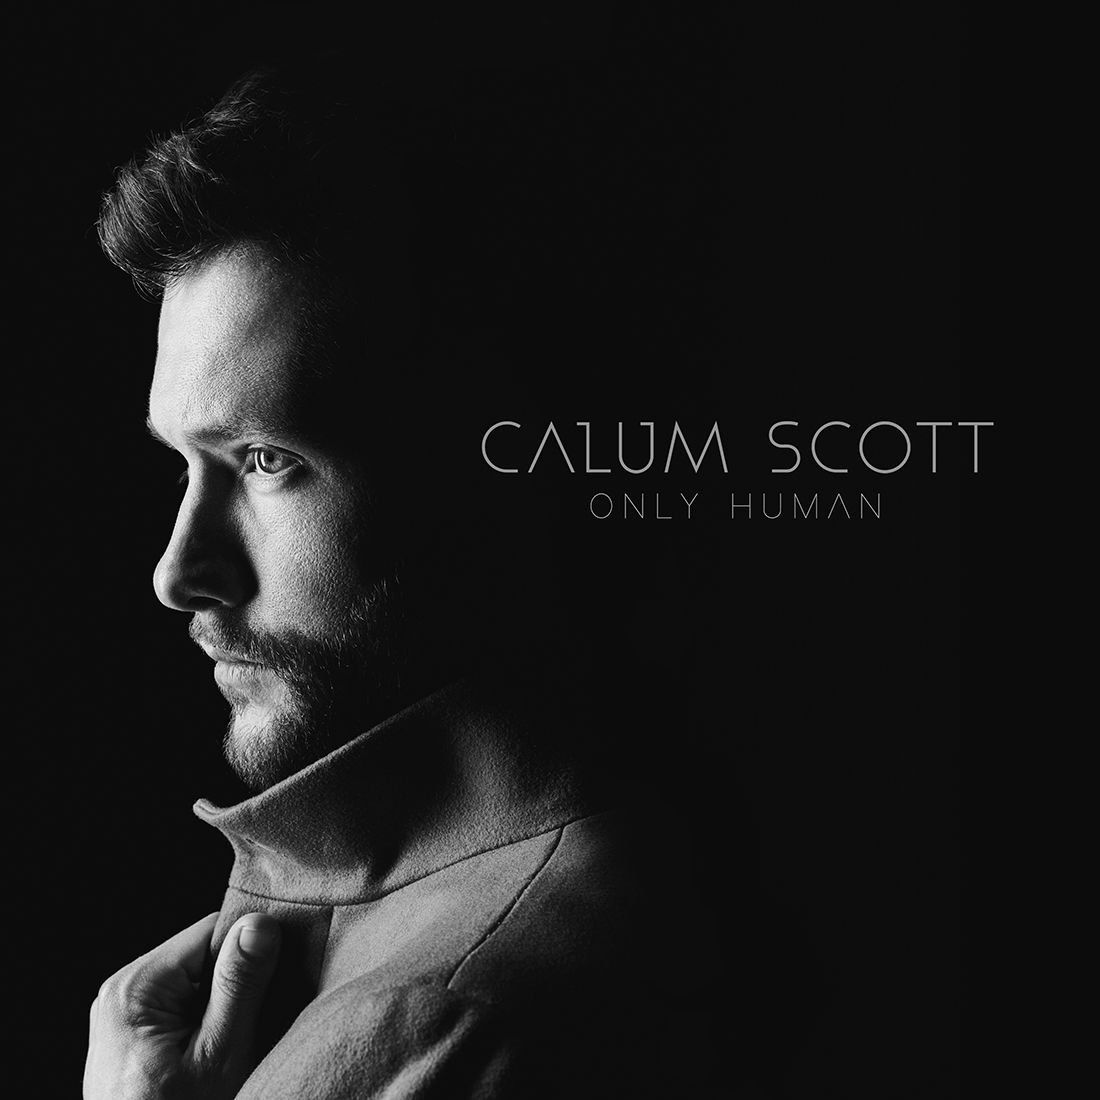 Calum Scott - Only Human album cover